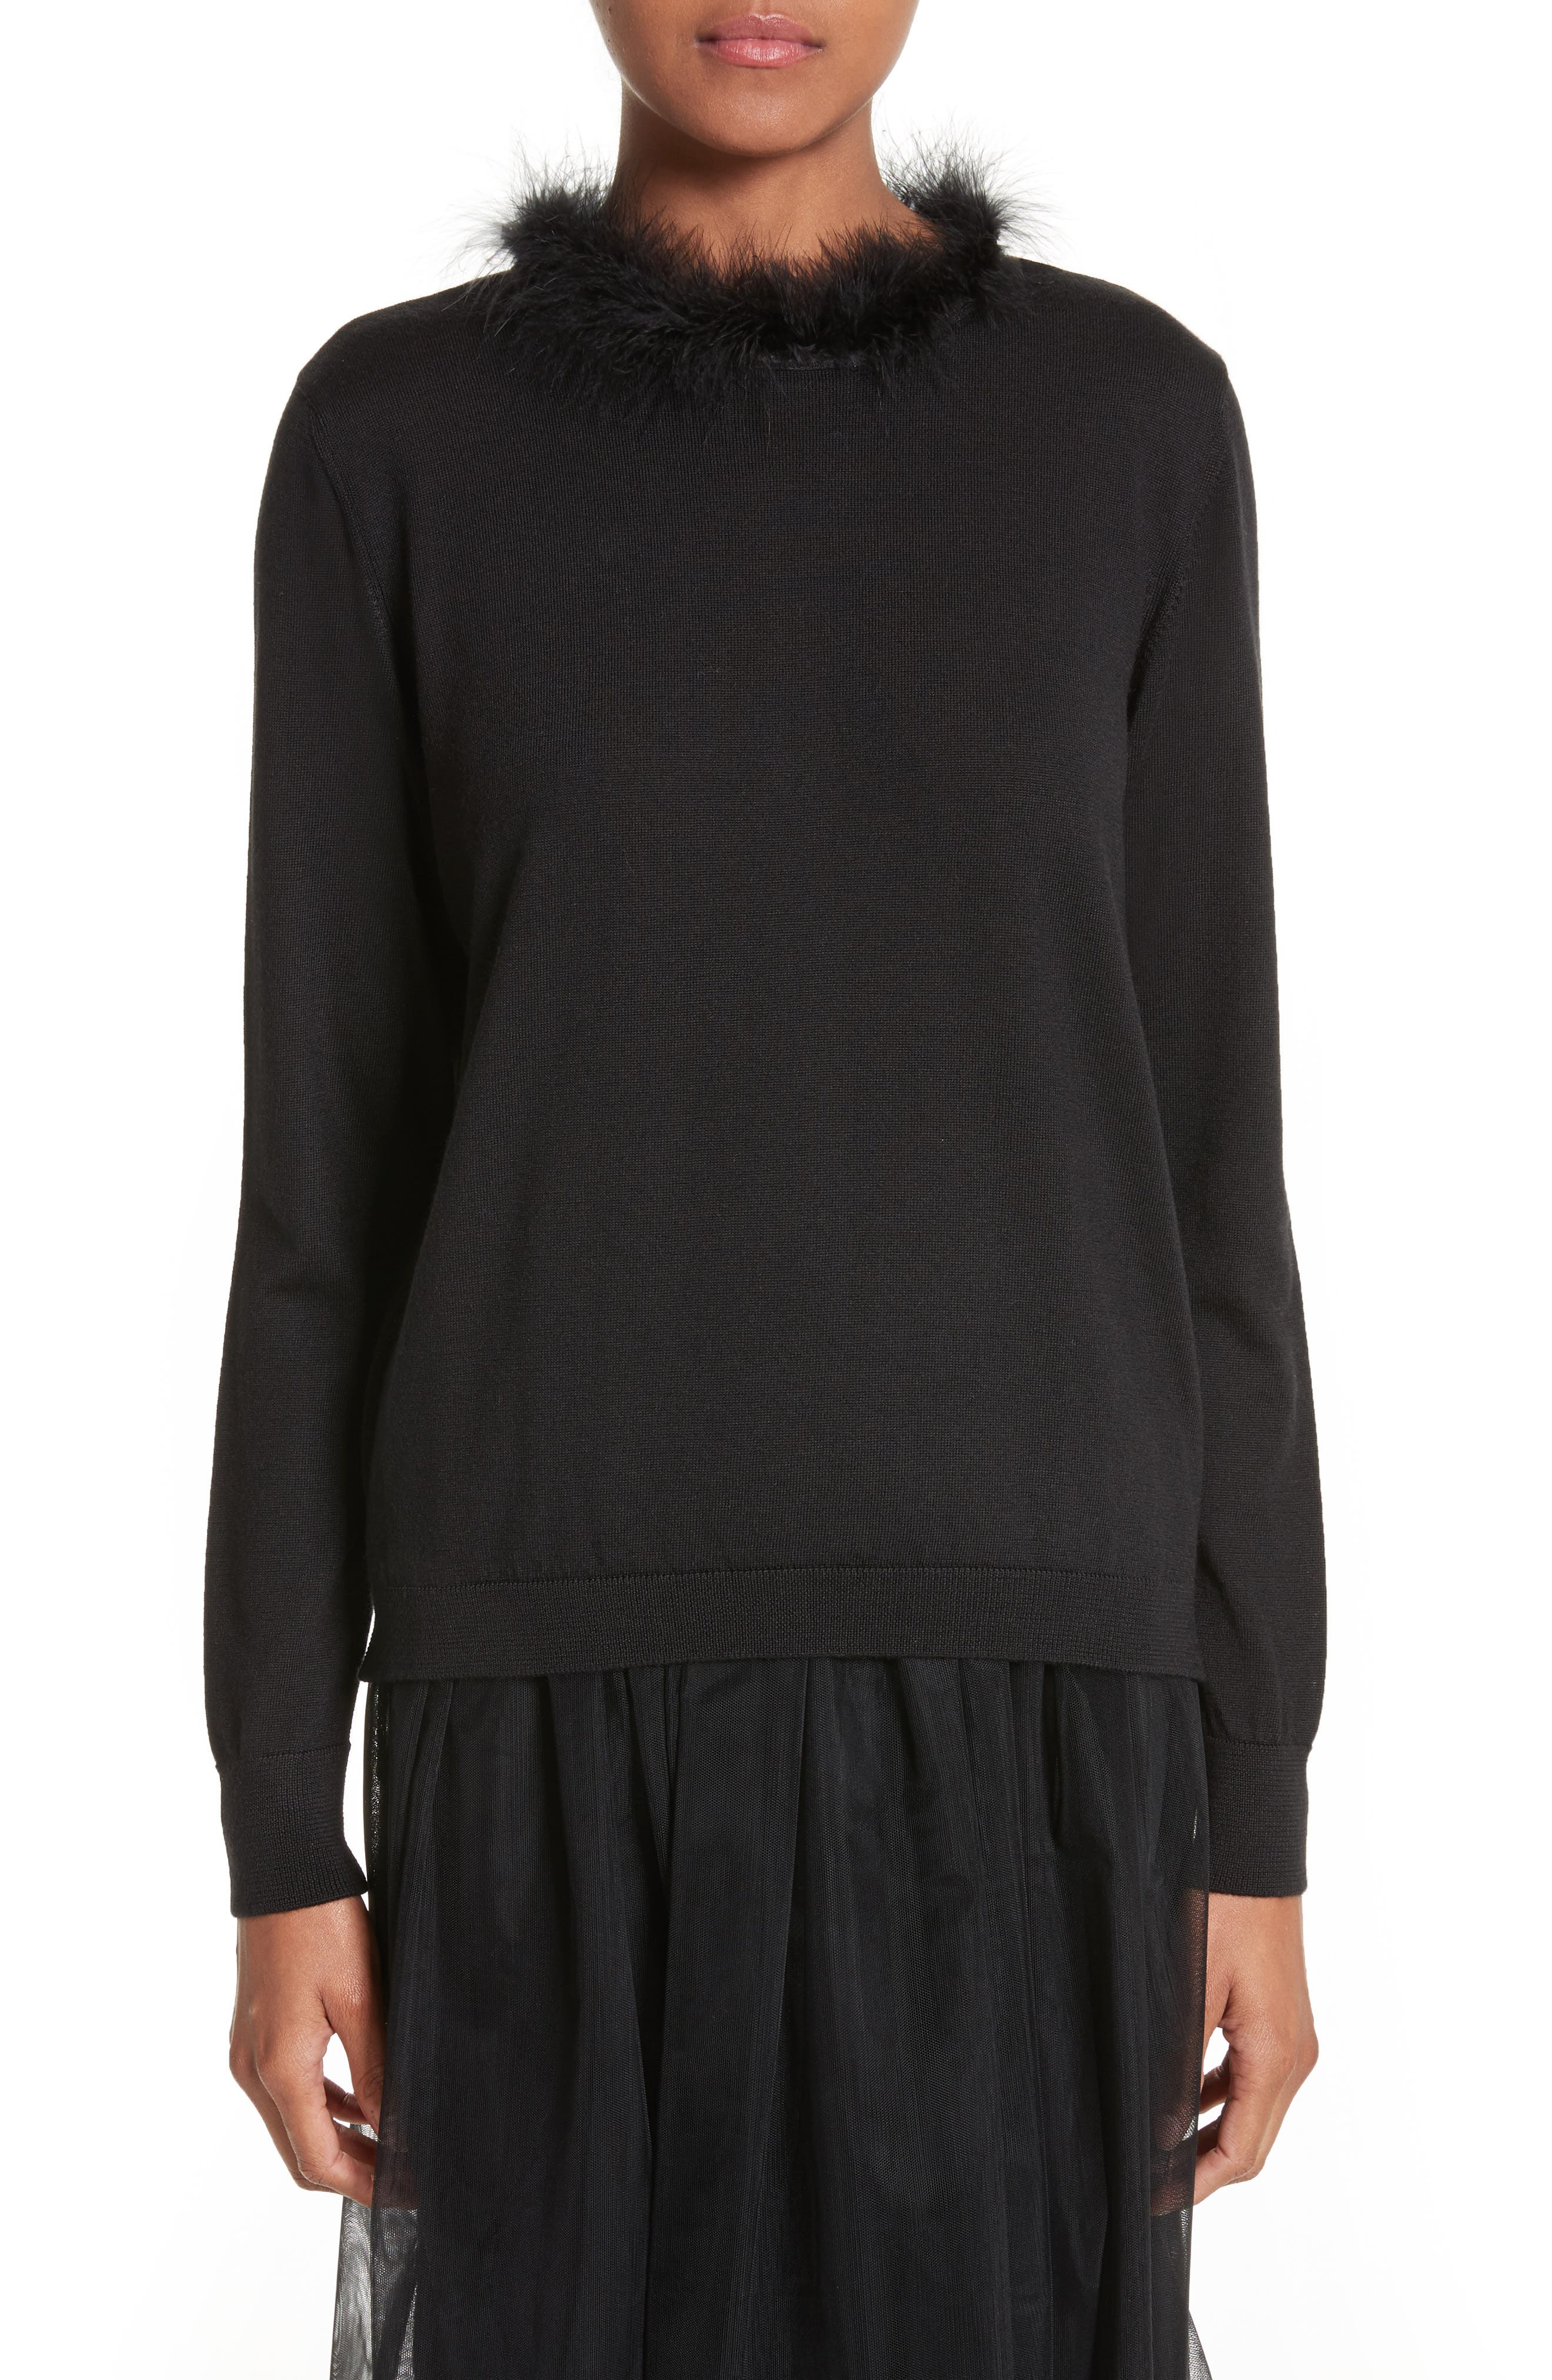 Main Image - Simone Rocha Teddy Open Back Sweater with Feather Trim